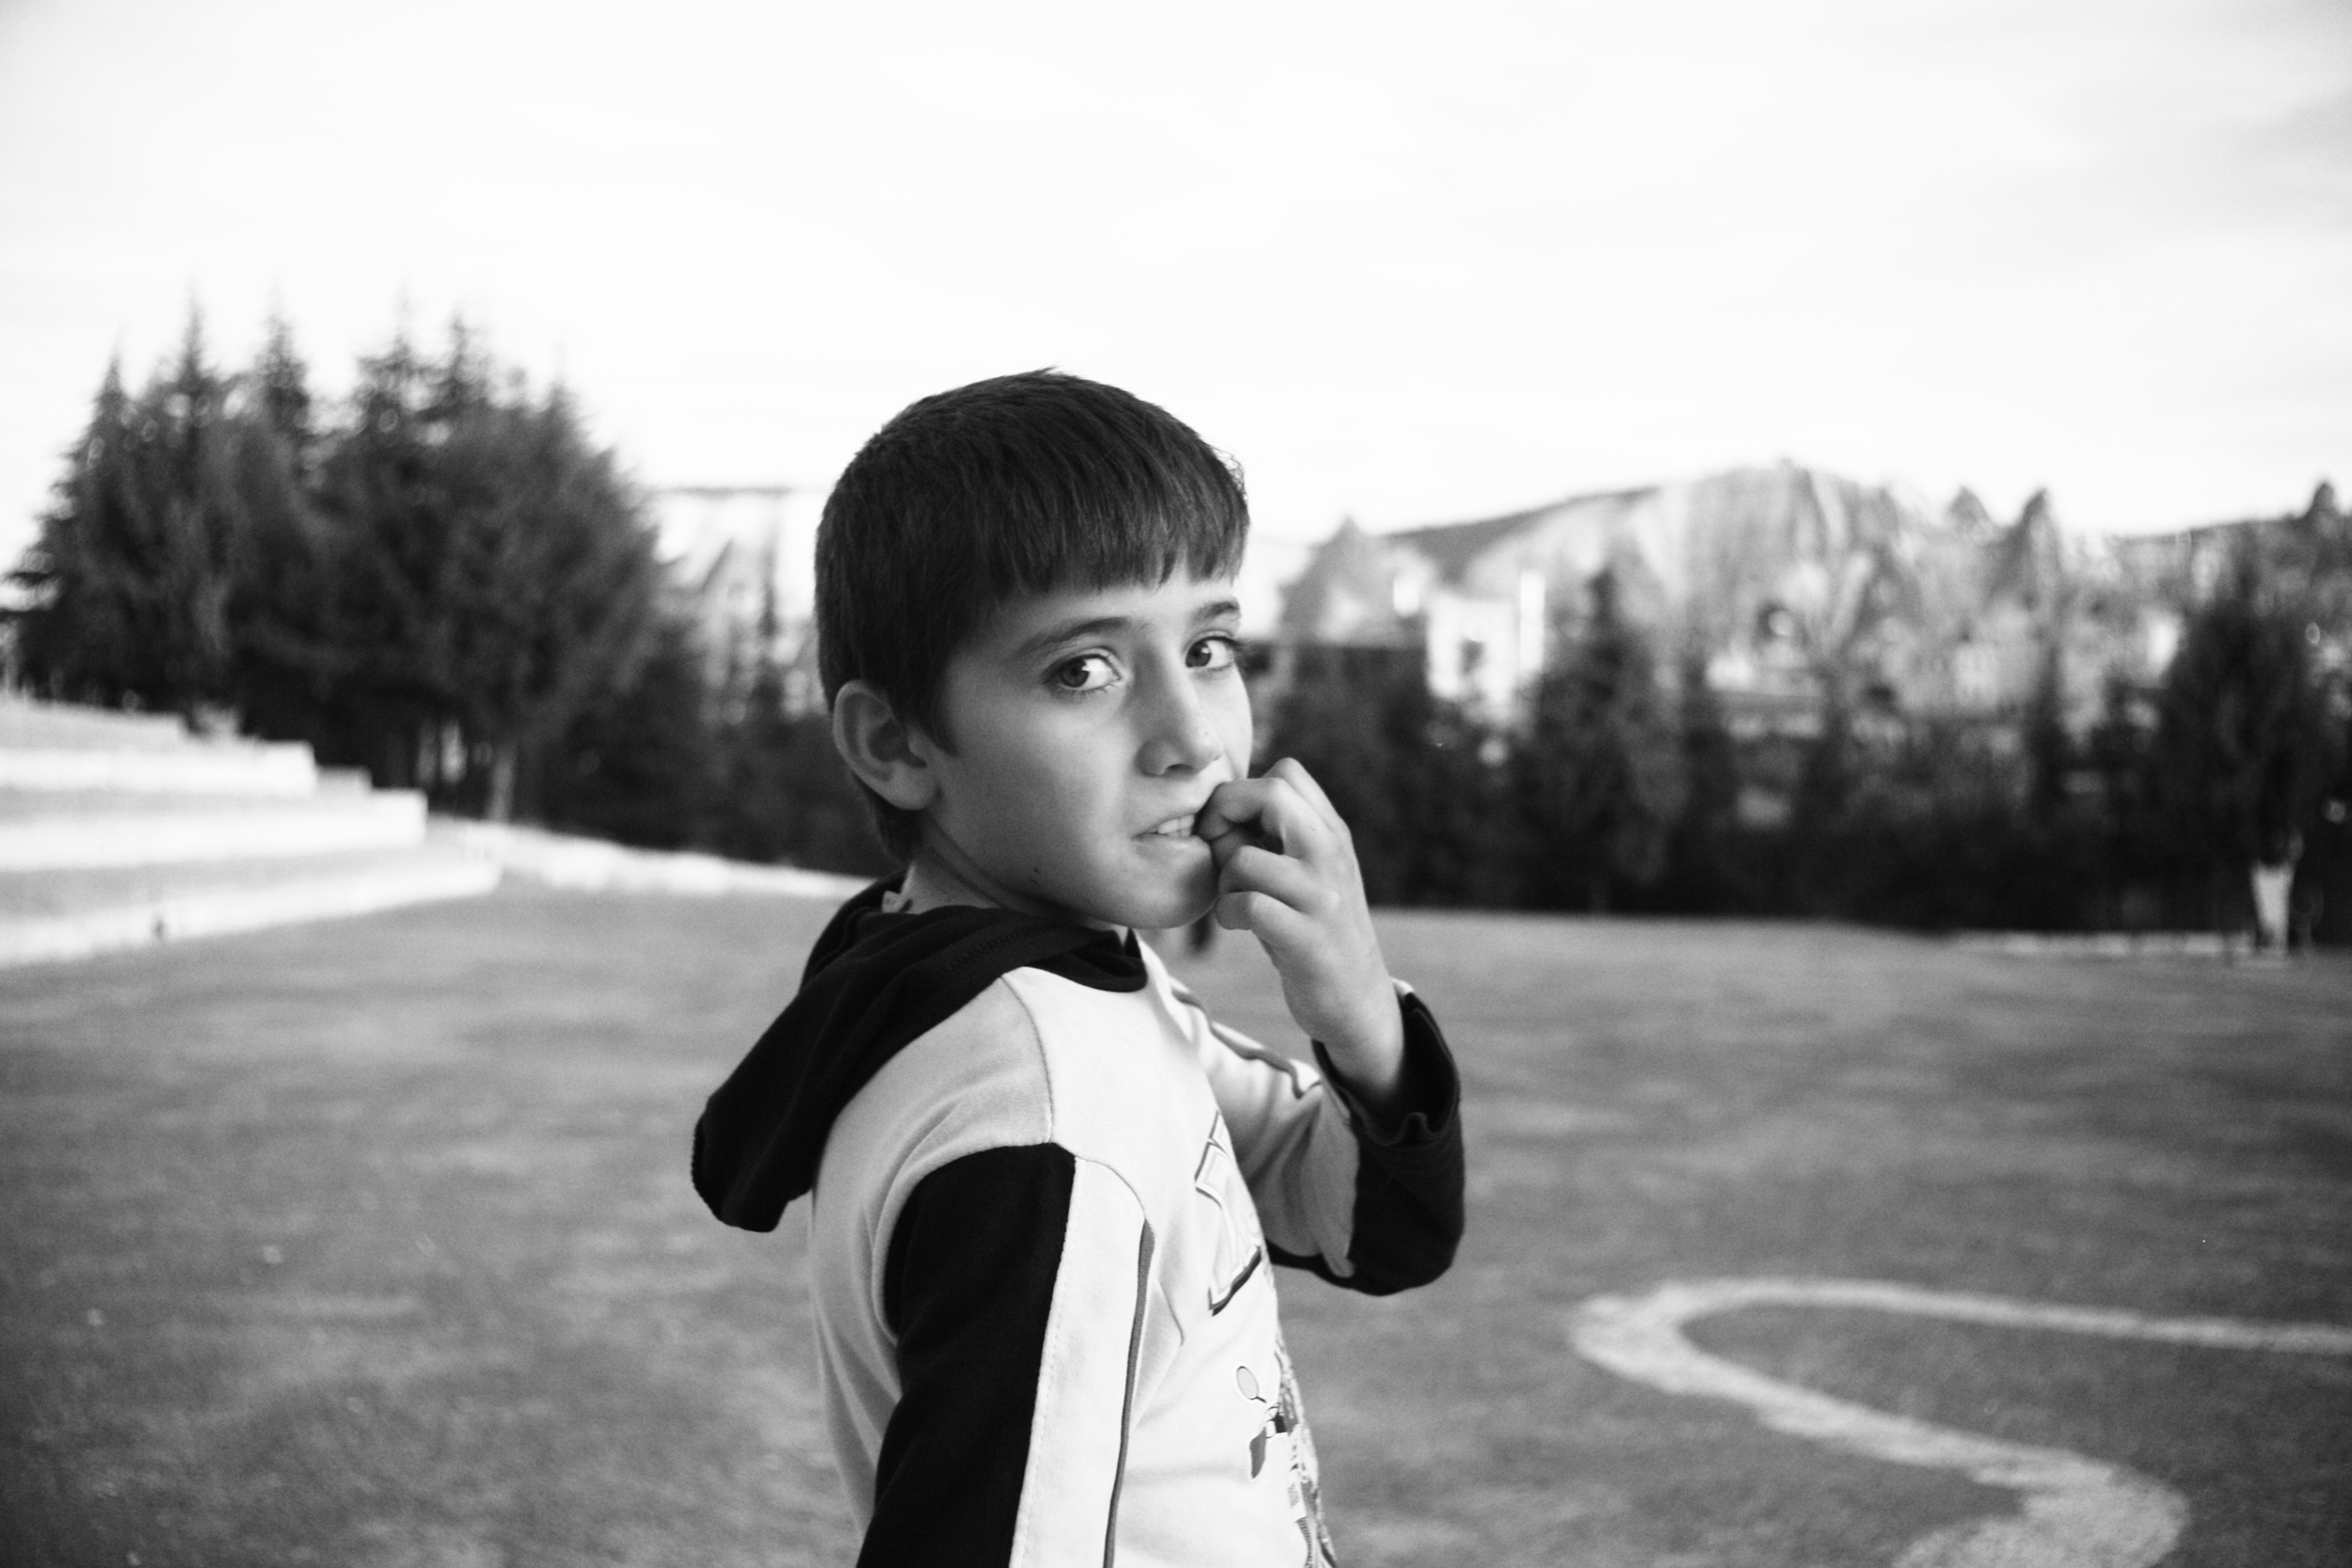 """Millions   """"We had settled in the small town of Goreme in Turkey for awhile, getting to know the people, the culture. I was getting fairly adventurous and decide to walk around the outskirts of the town at dusk to find some photographic opportunities. I came across a group of young boys playing soccer. This boy was one of them. Be careful not to melt in his eyes."""""""